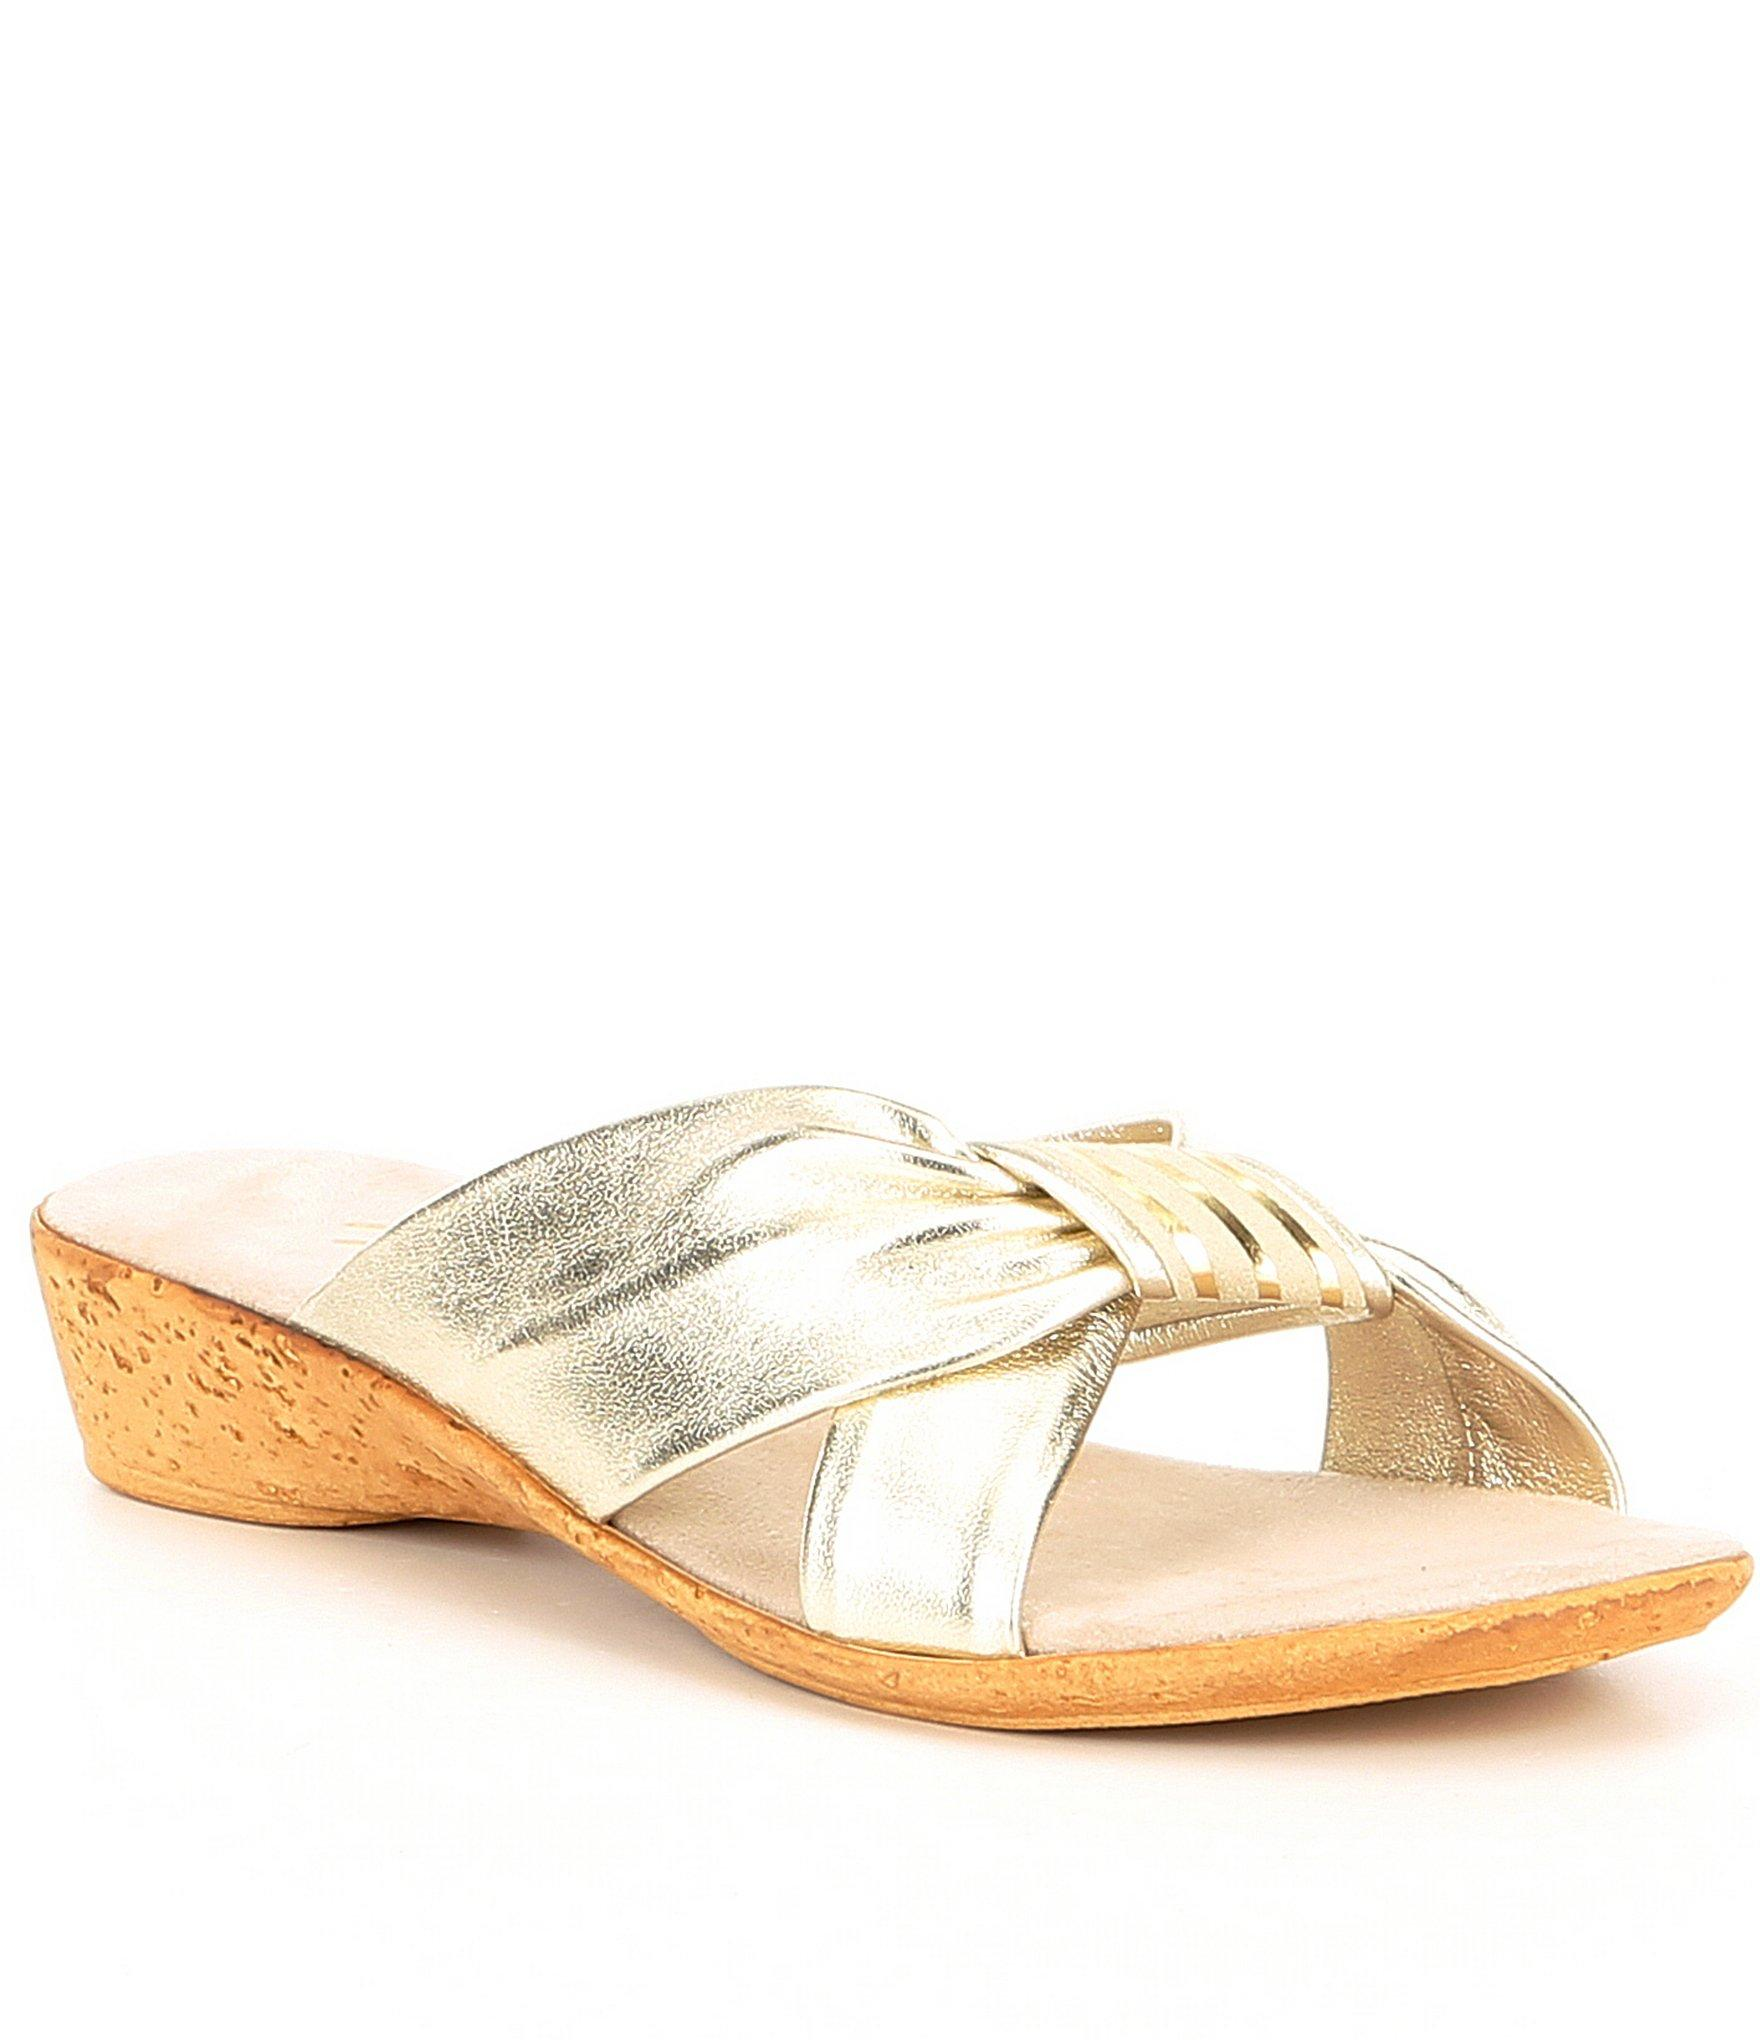 8784a5eef52 Onex. Women s Oasis Leather Cross-band Slide Wedge Sandals